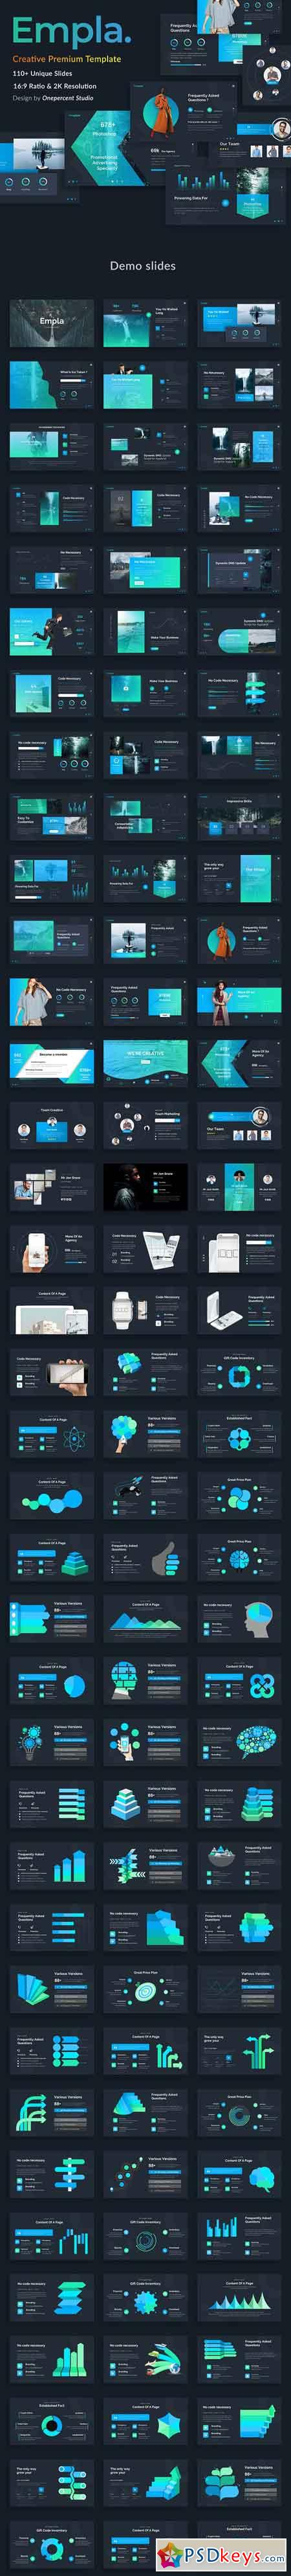 Empla Creative Powerpoint Template 2954663